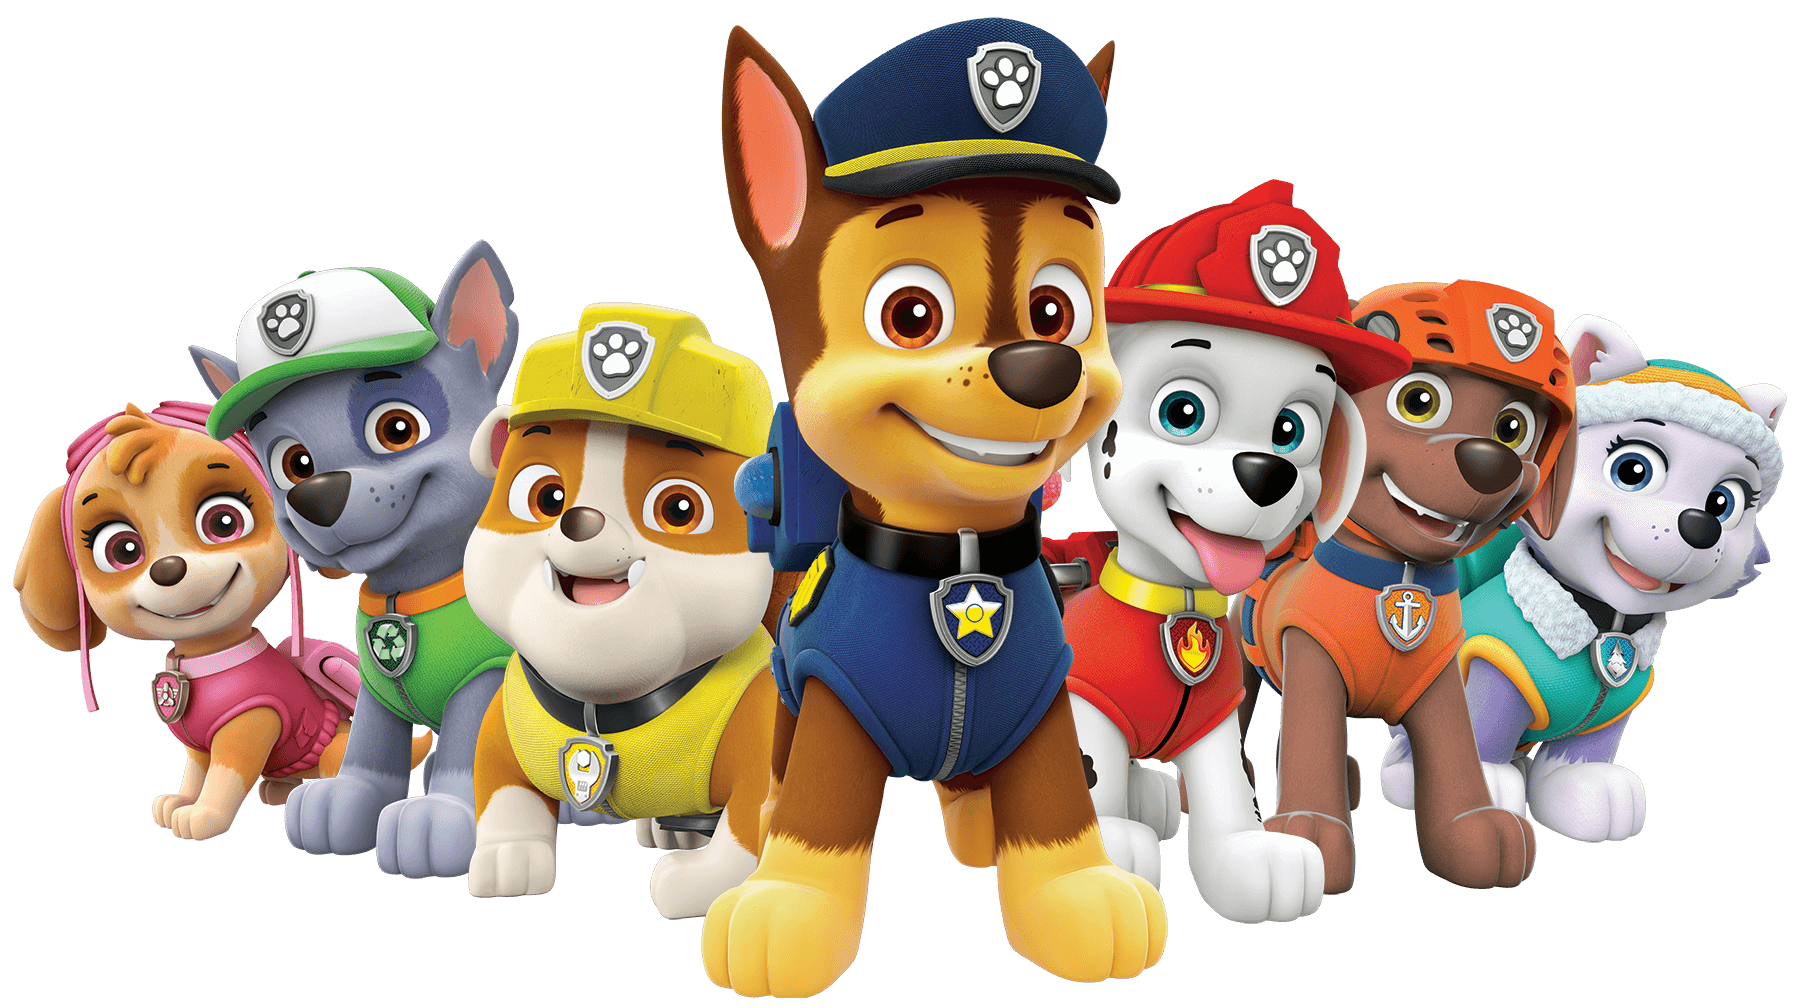 paw patrol clipart at getdrawings com free for personal happy birthday dog clipart free happy dog clipart